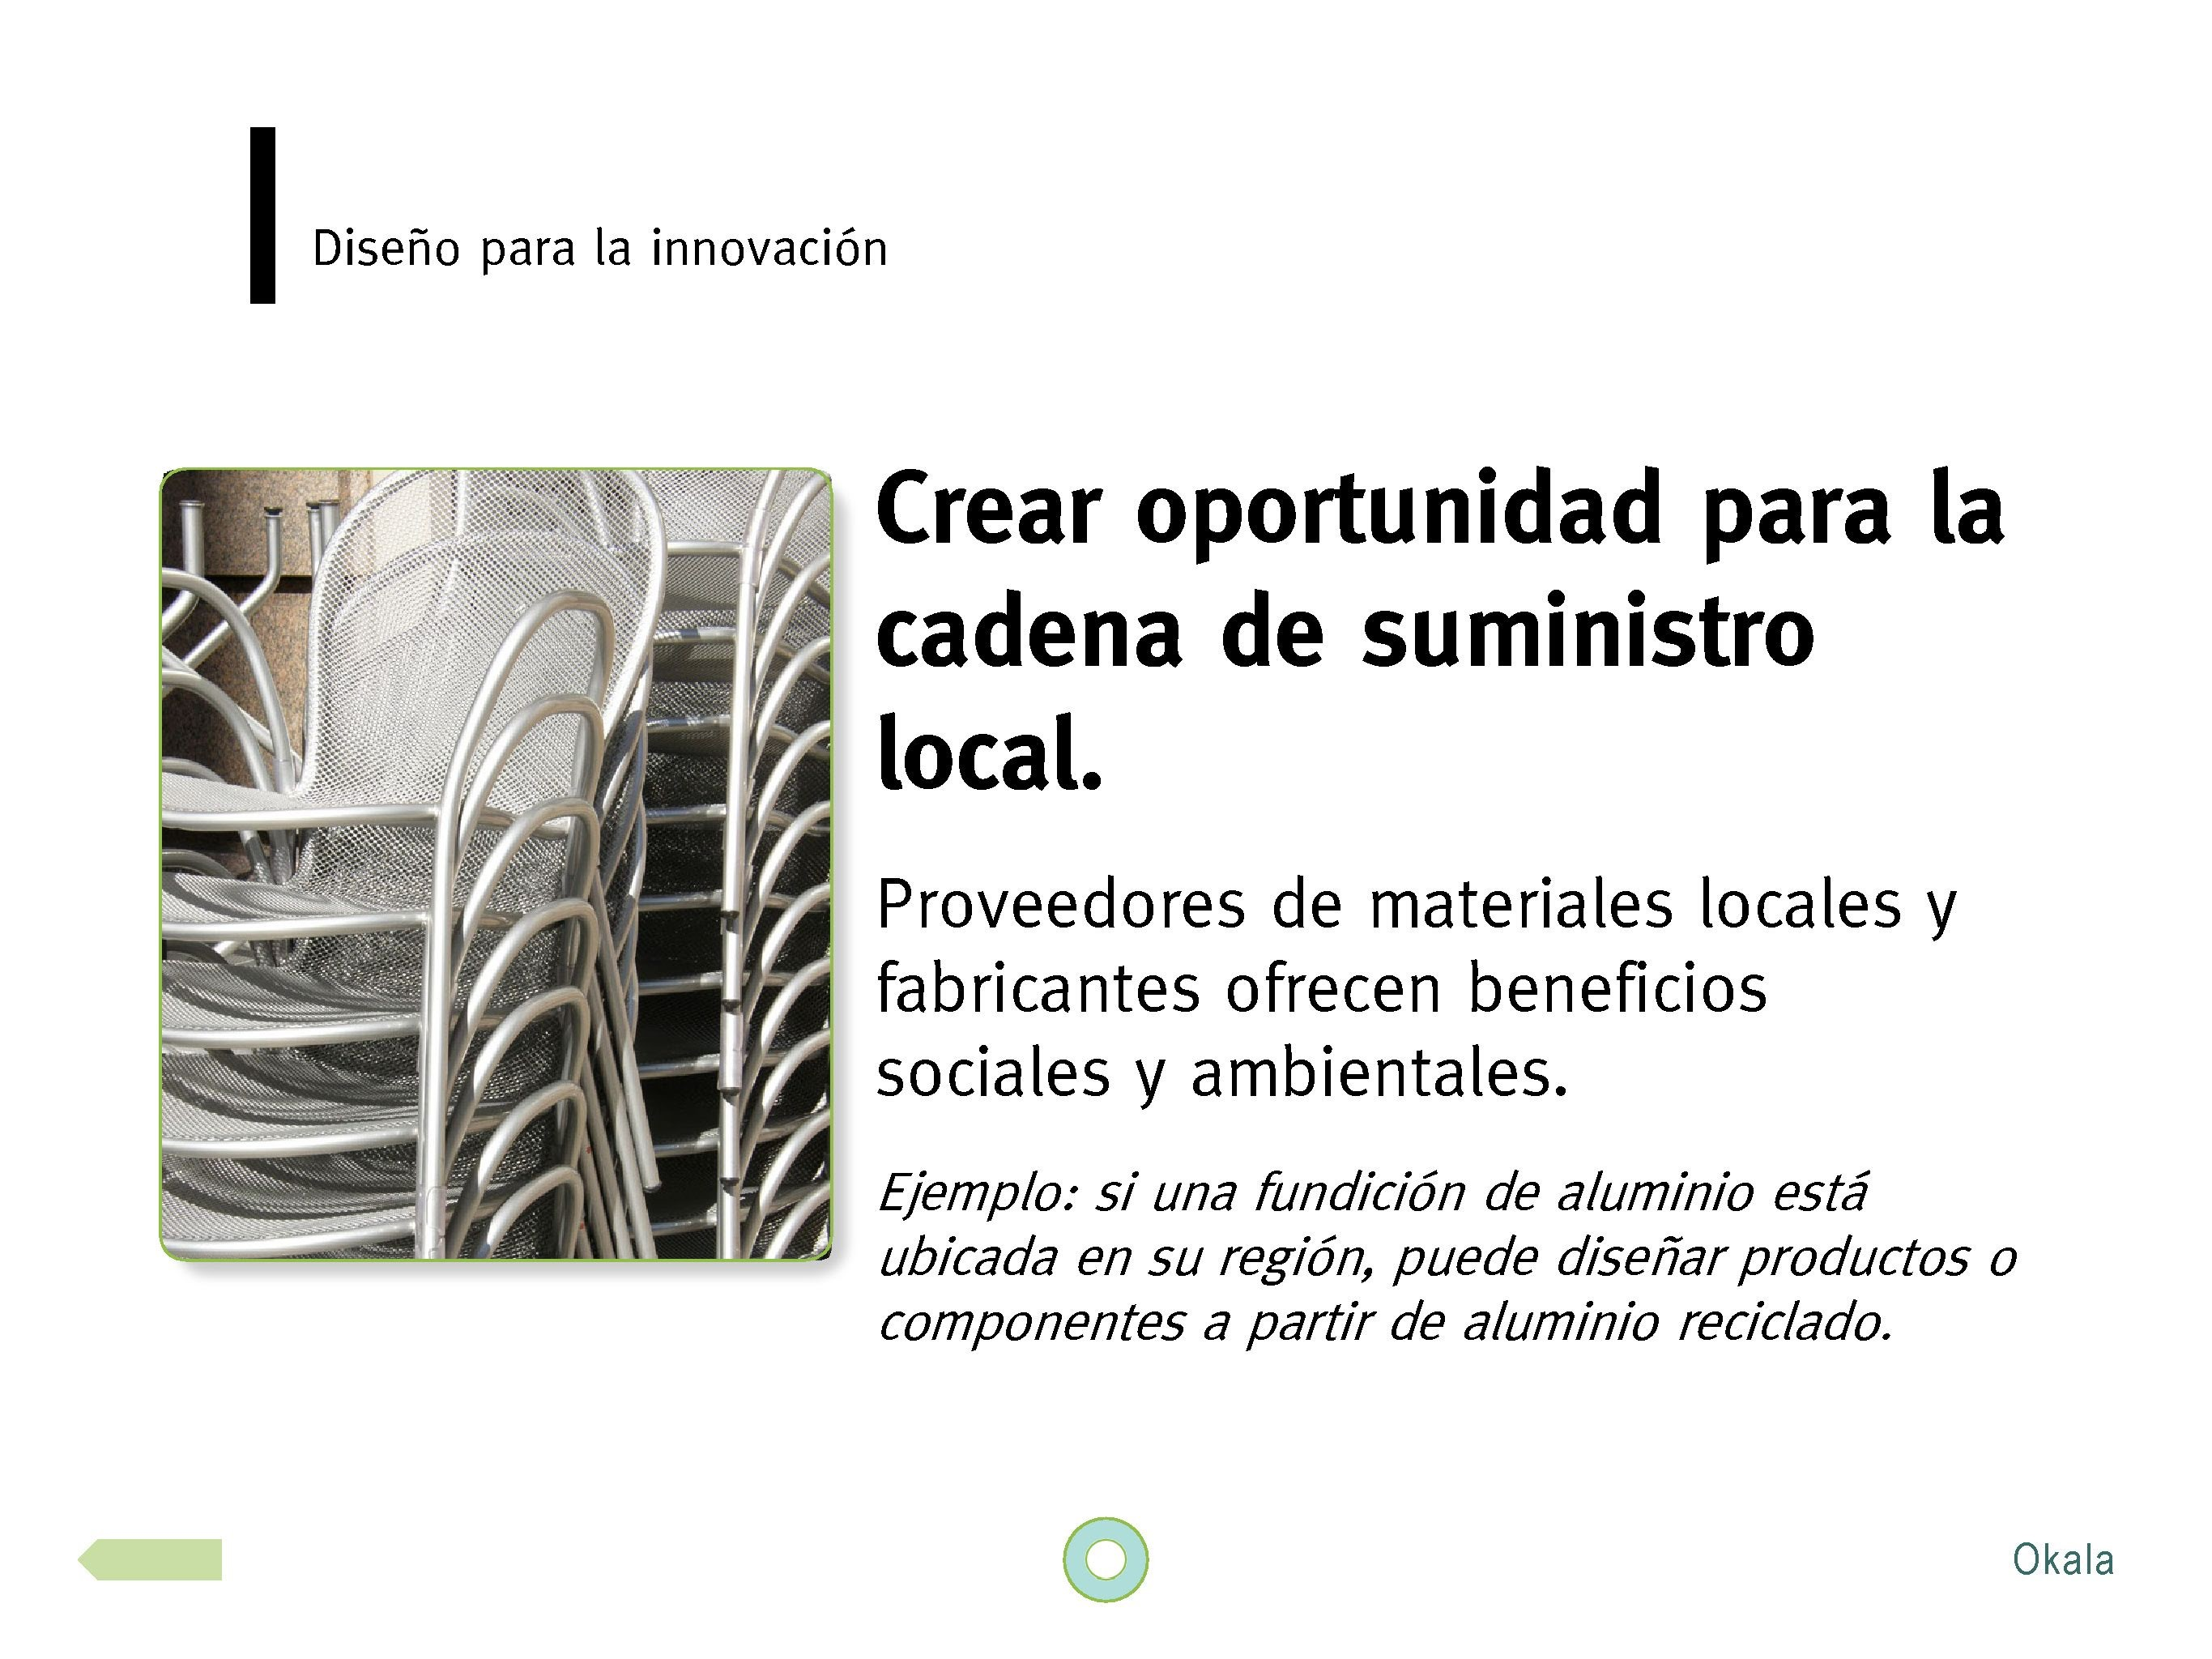 okala-ecodesign-strategy-guide-2012-spanish.new_page_08-1